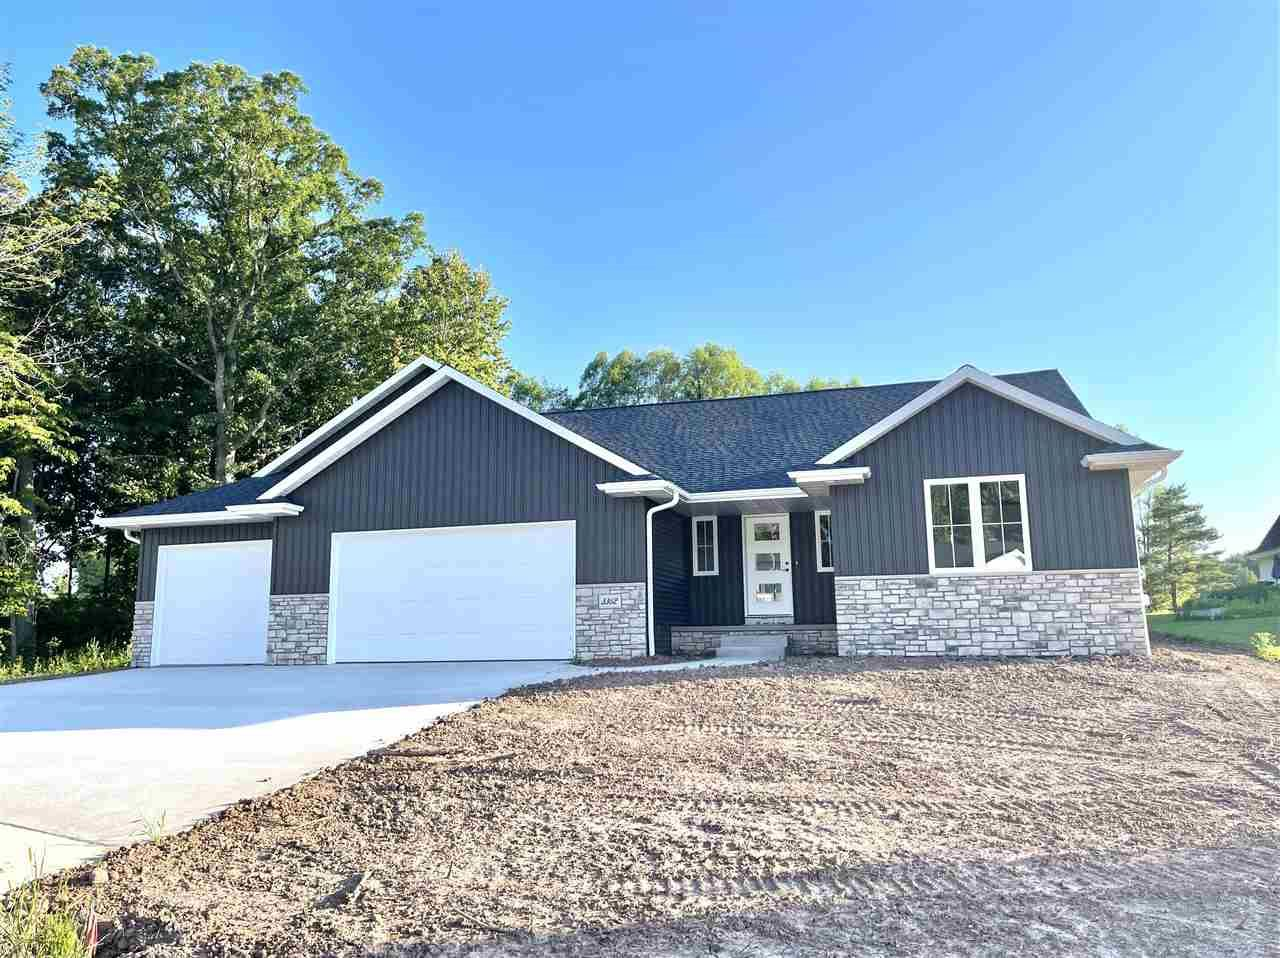 3362 LARGO RIDGE Drive, Green Bay, WI 54311 - MLS#: 50233747